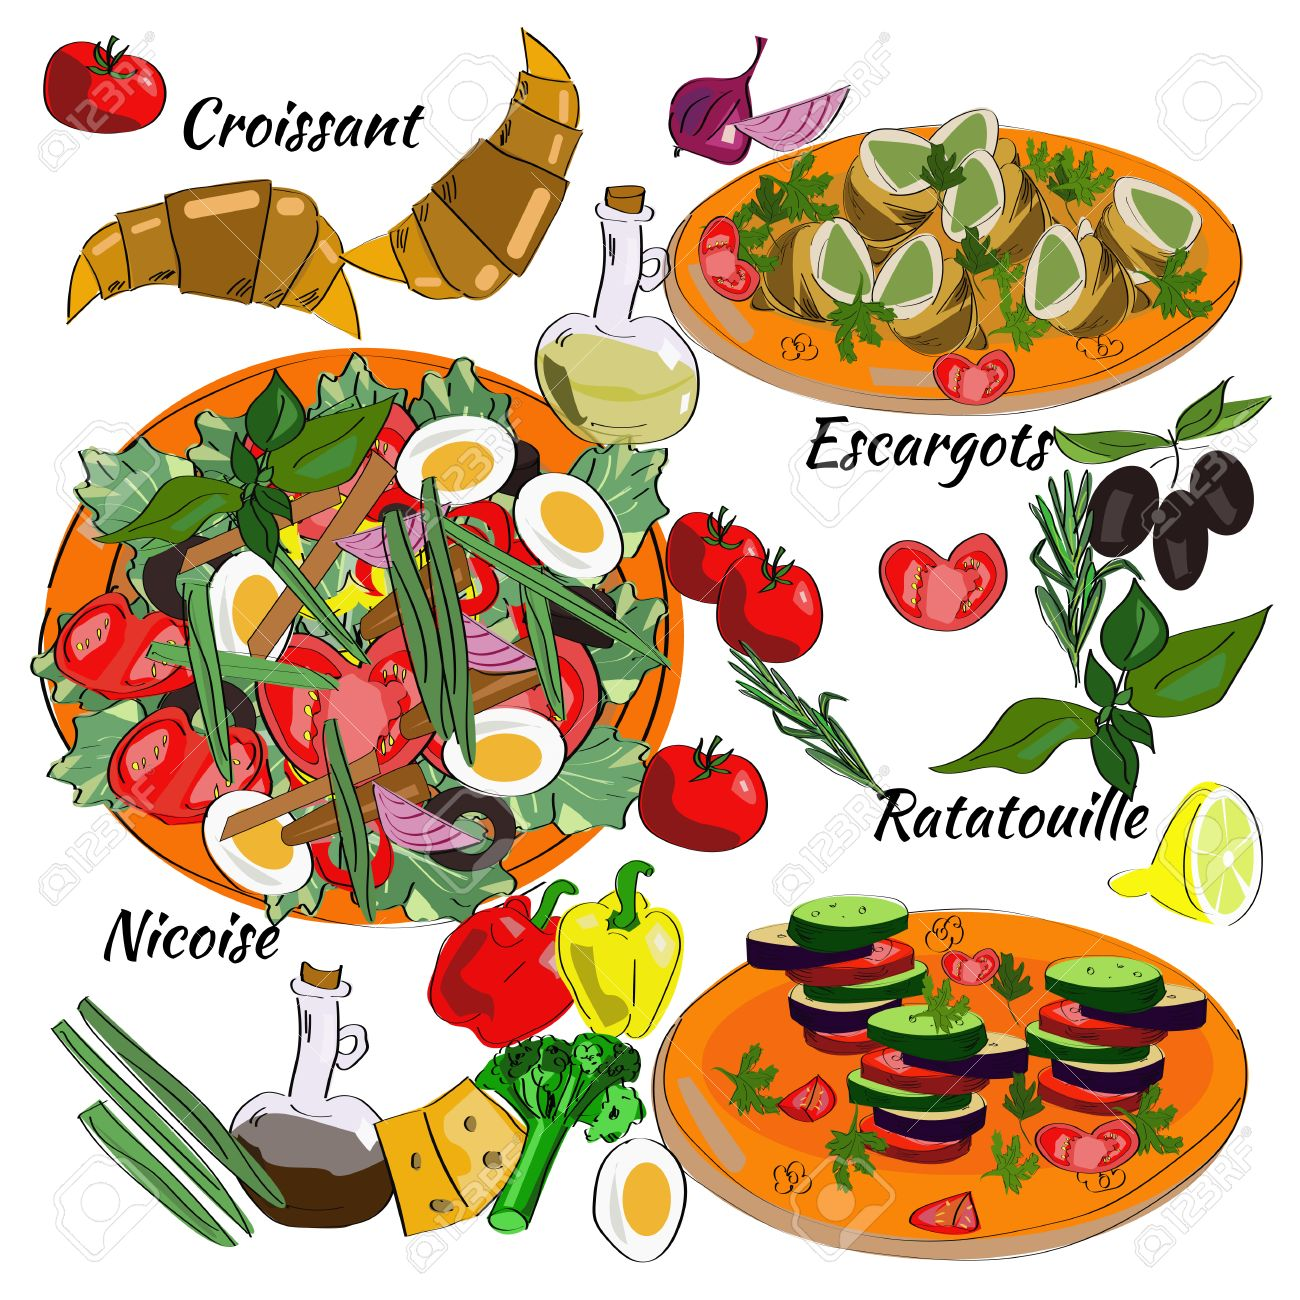 traditional dishes of french cuisine. nicoise, ratatouille